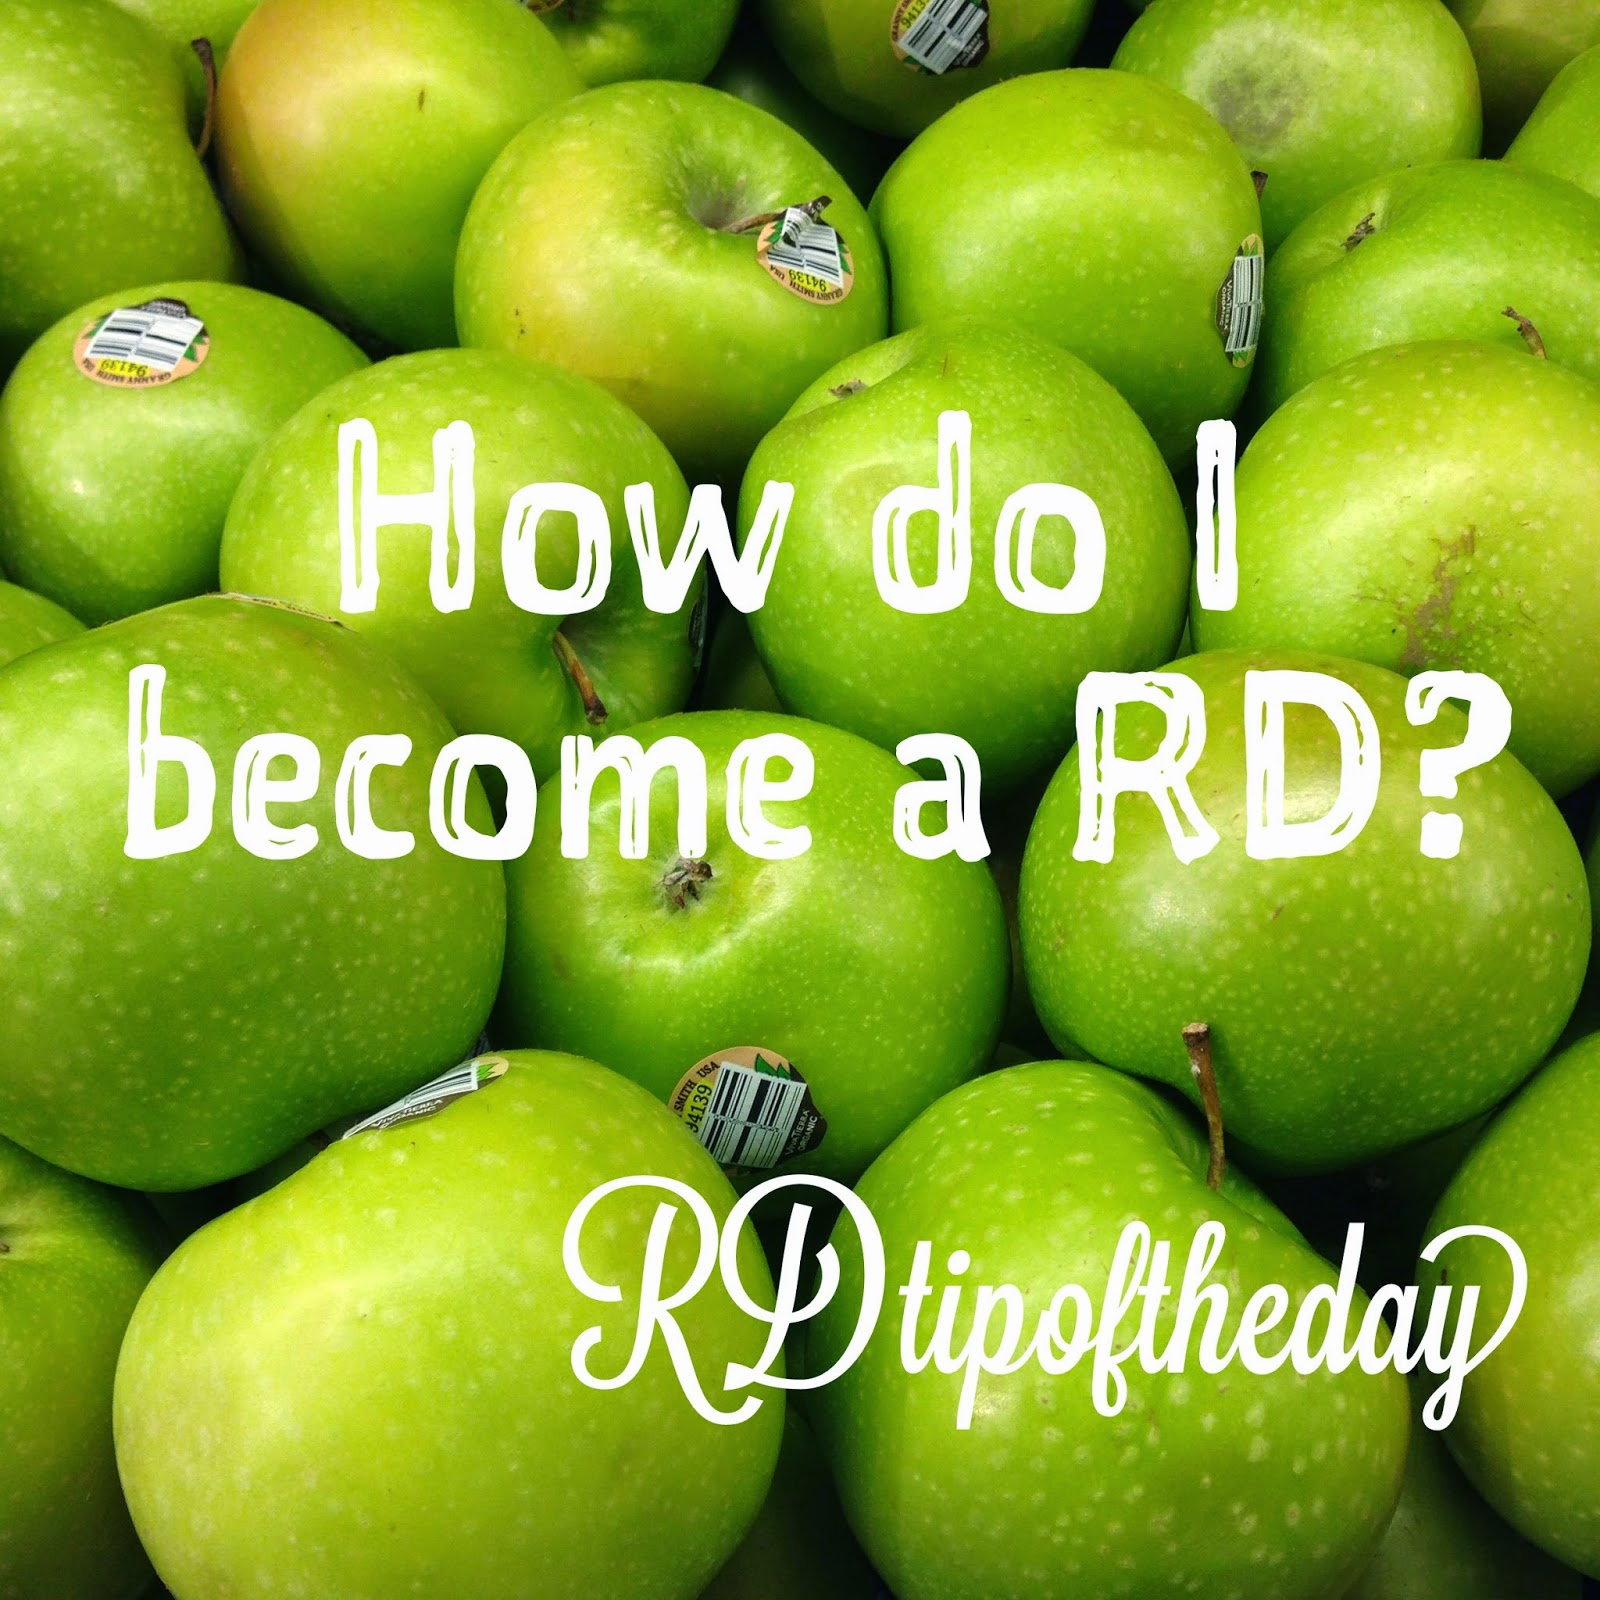 Rd Tip Of The Day How Do I Become A Registered Dietitian